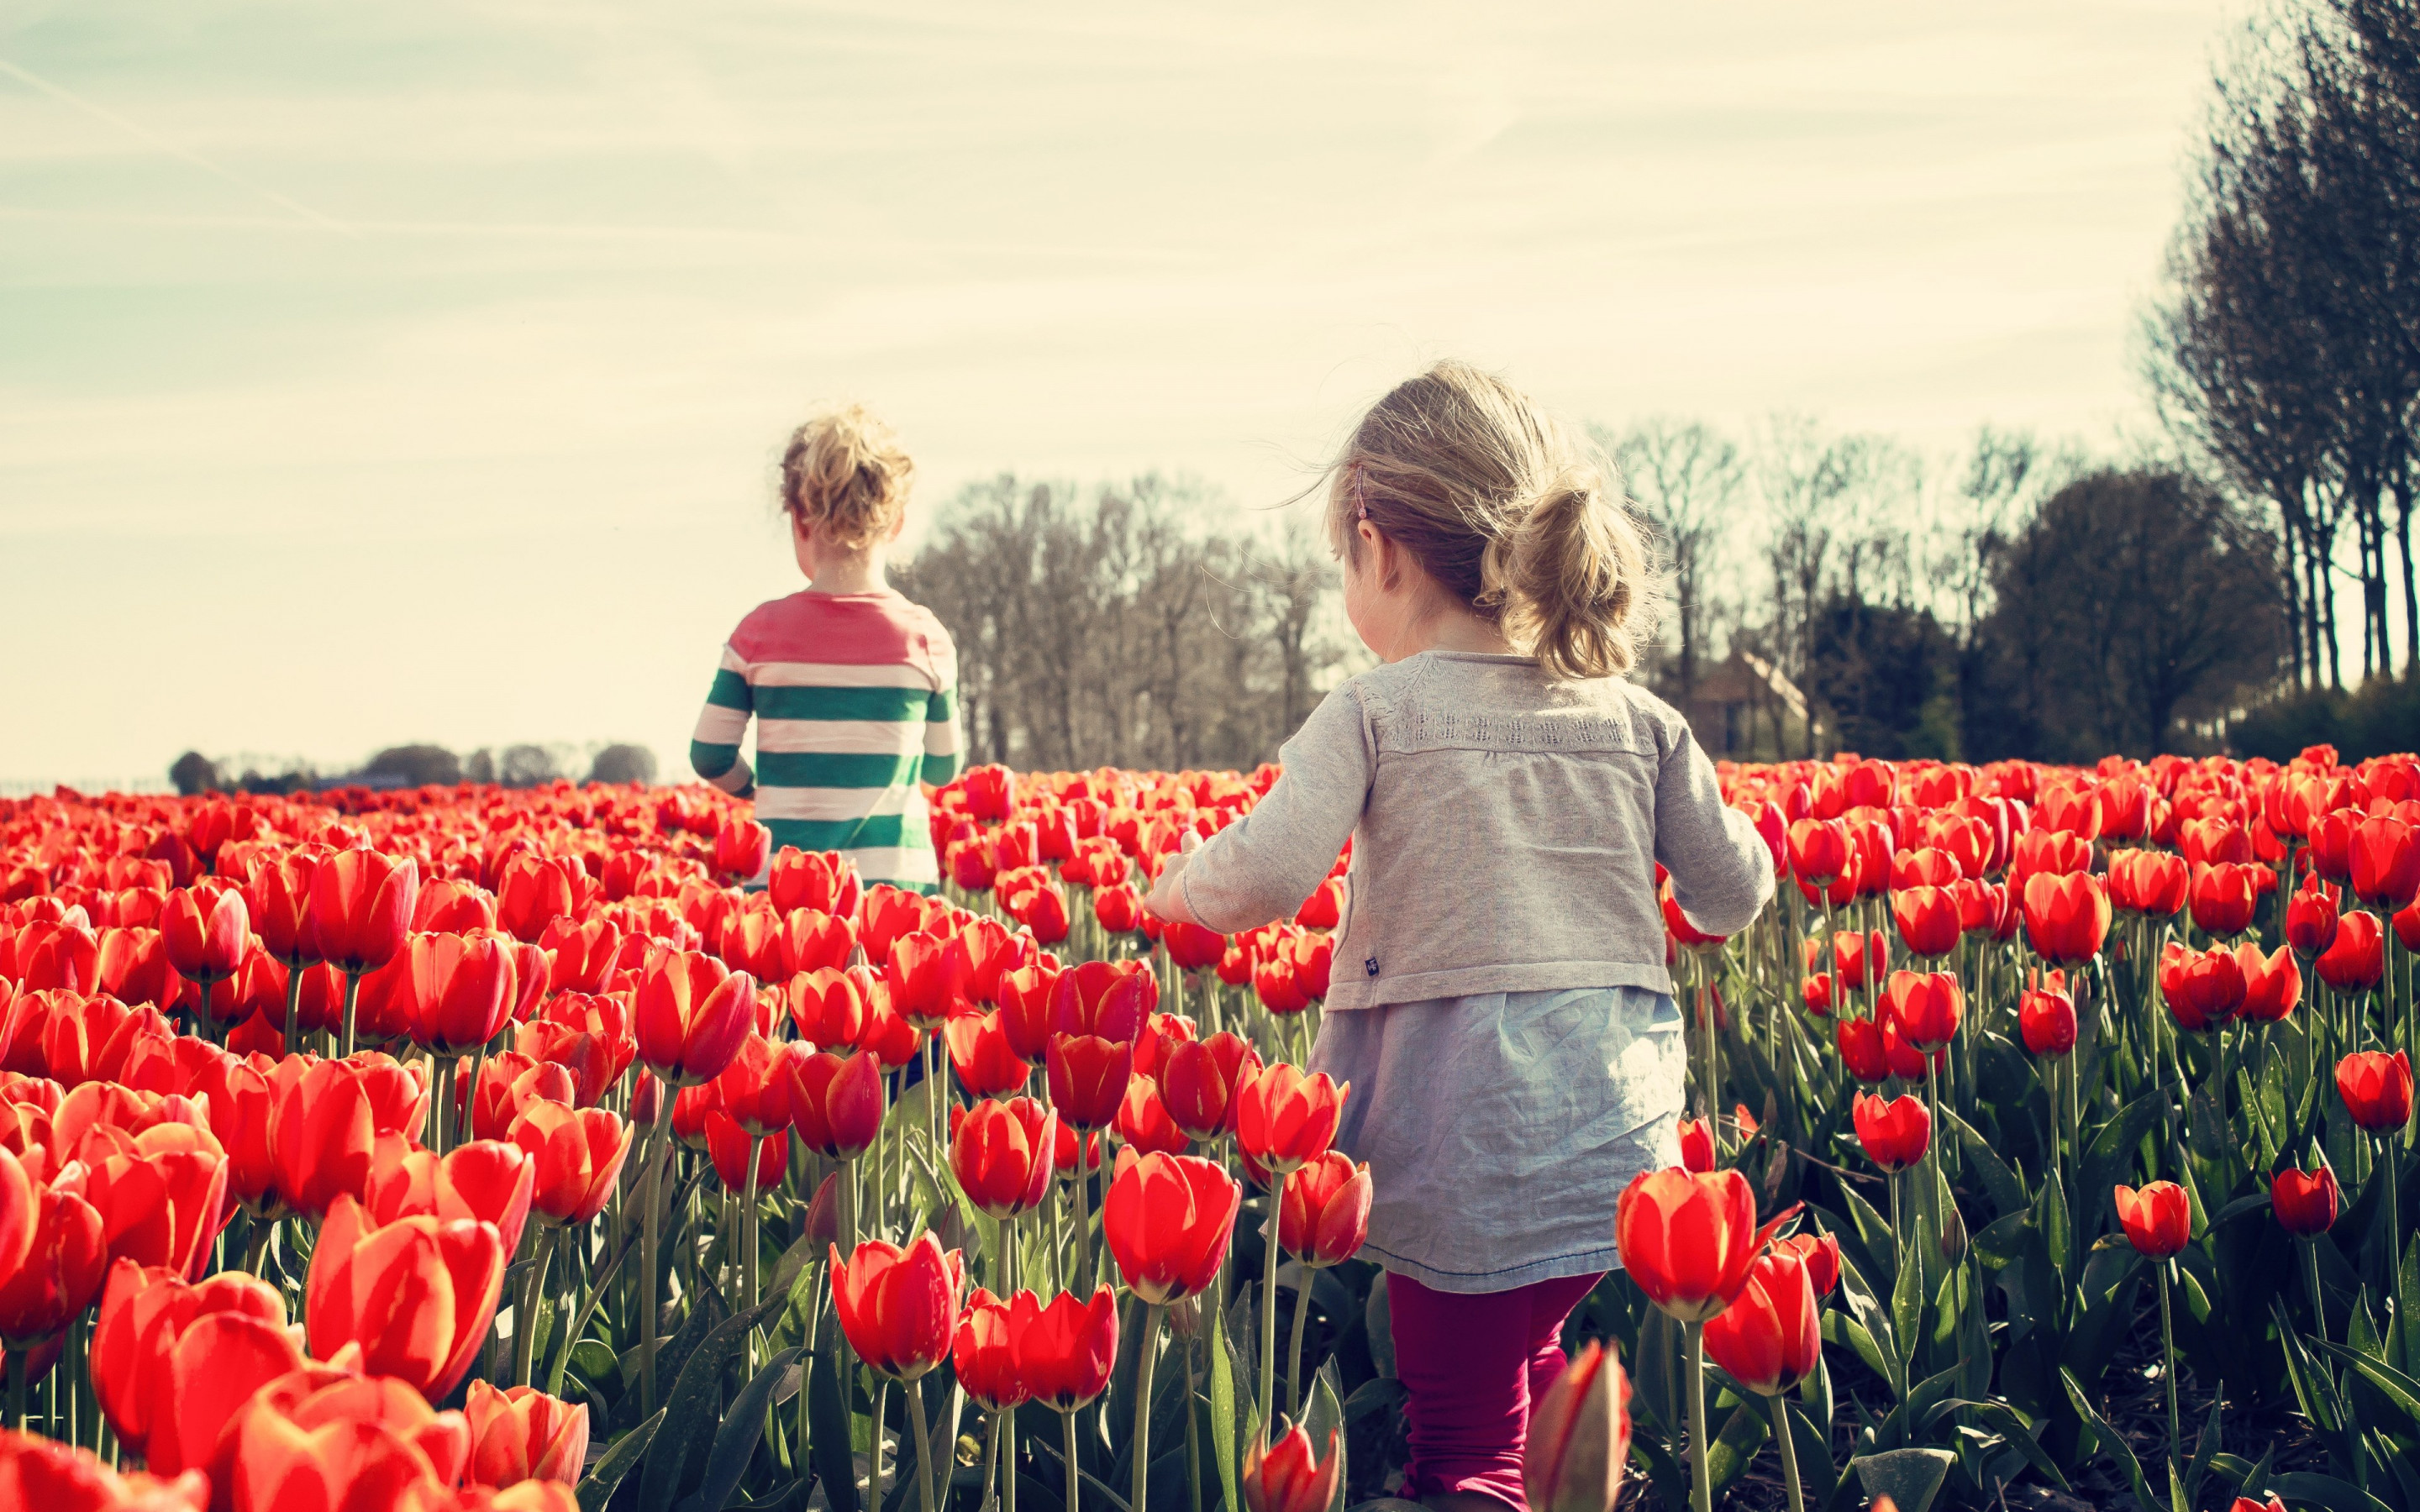 Children in the land with tulips | 2880x1800 wallpaper